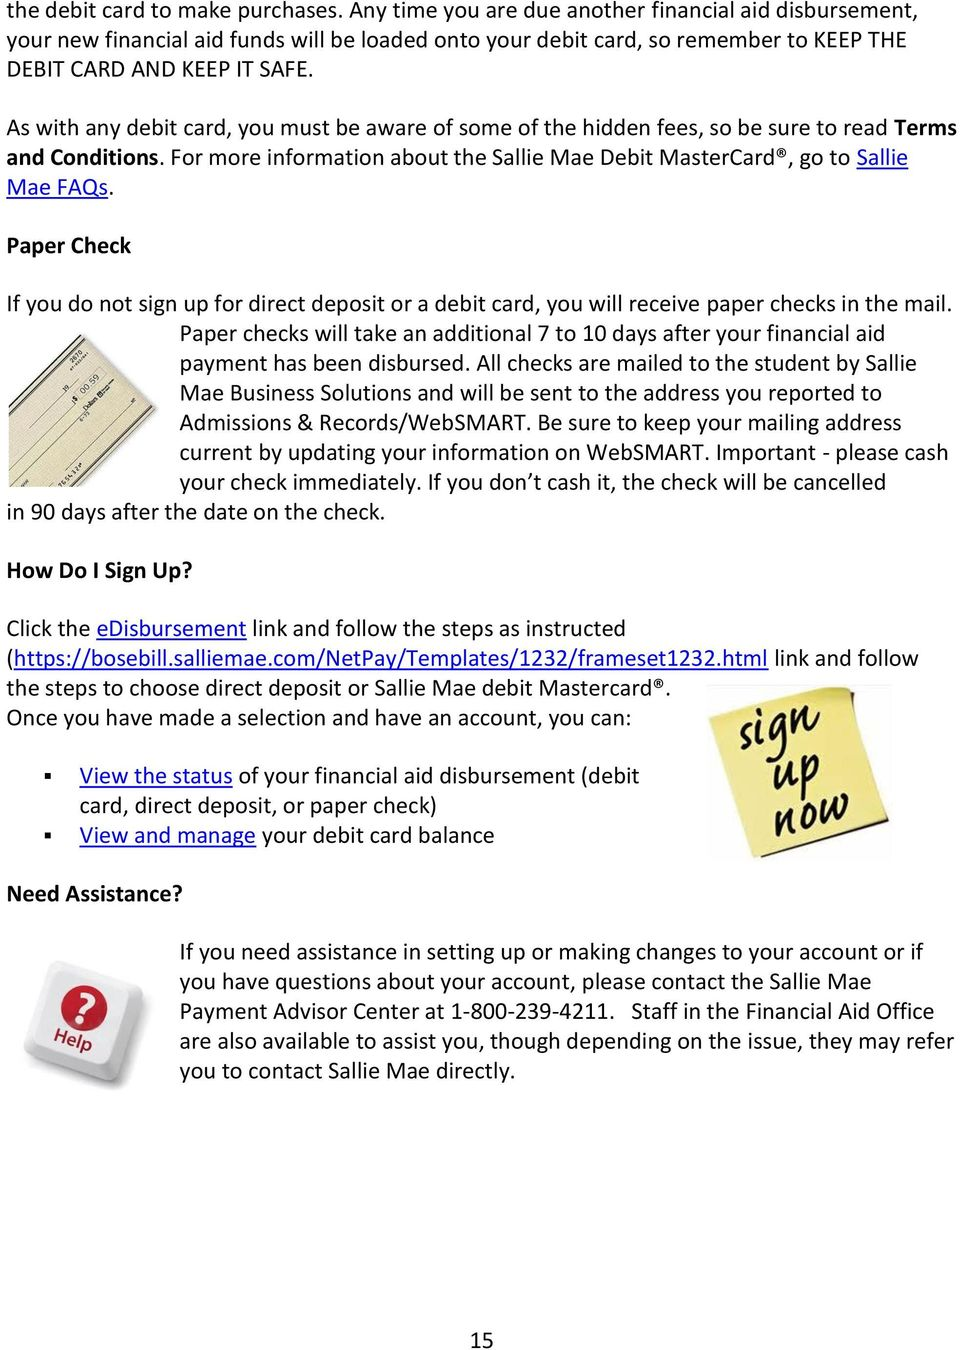 As with any debit card, you must be aware of some of the hidden fees, so be sure to read Terms and Conditions. For more information about the Sallie Mae Debit MasterCard, go to Sallie Mae FAQs.